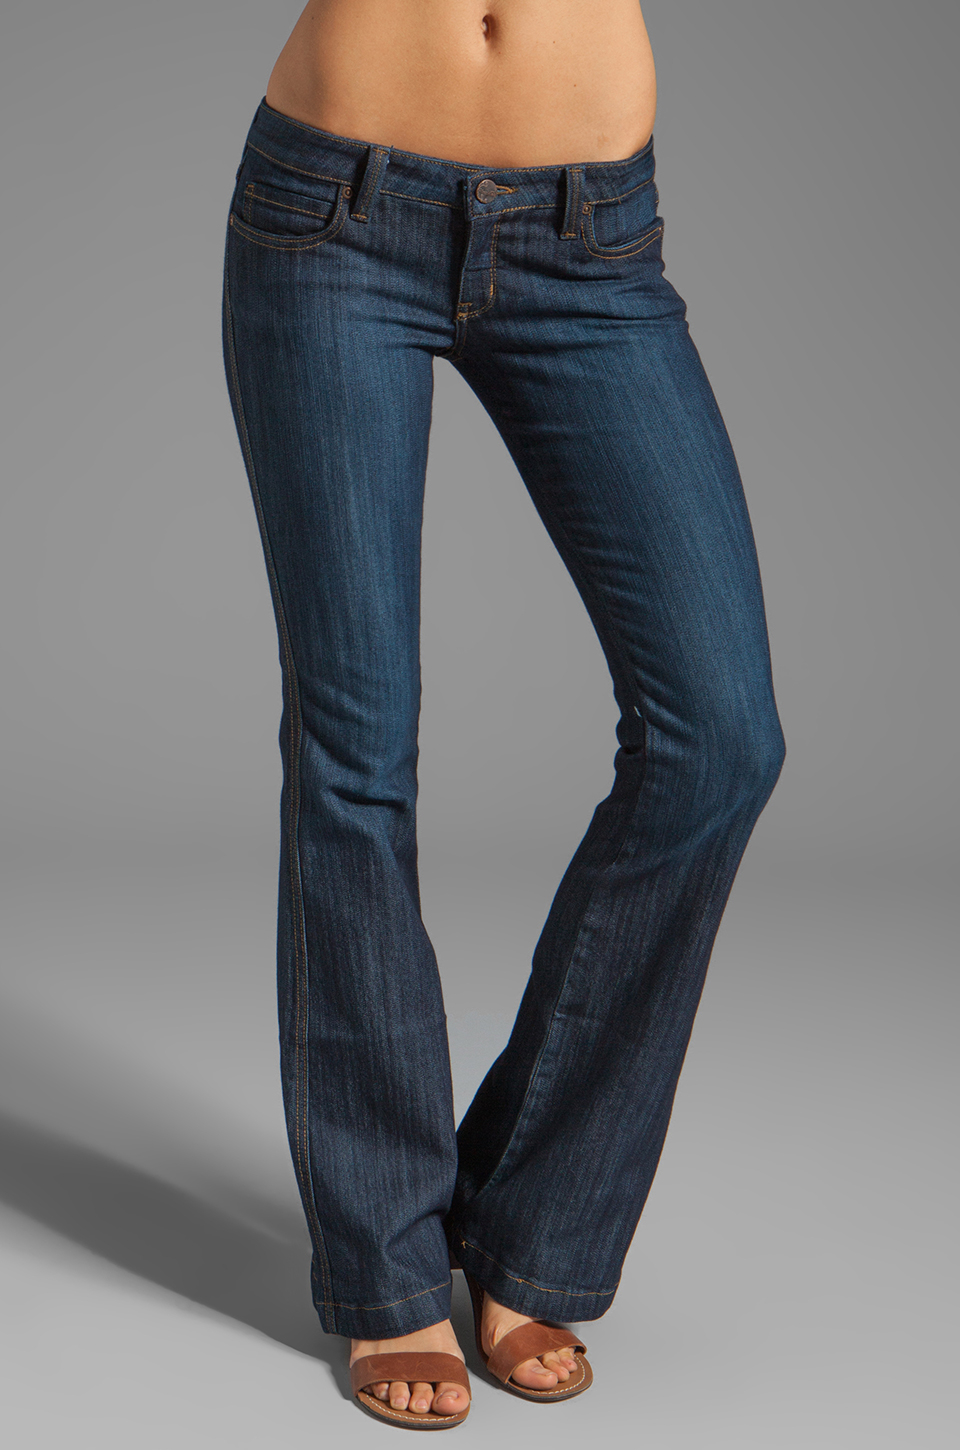 Frankie b. jeans Prepster Slim Boot in Kyoto in Blue | Lyst